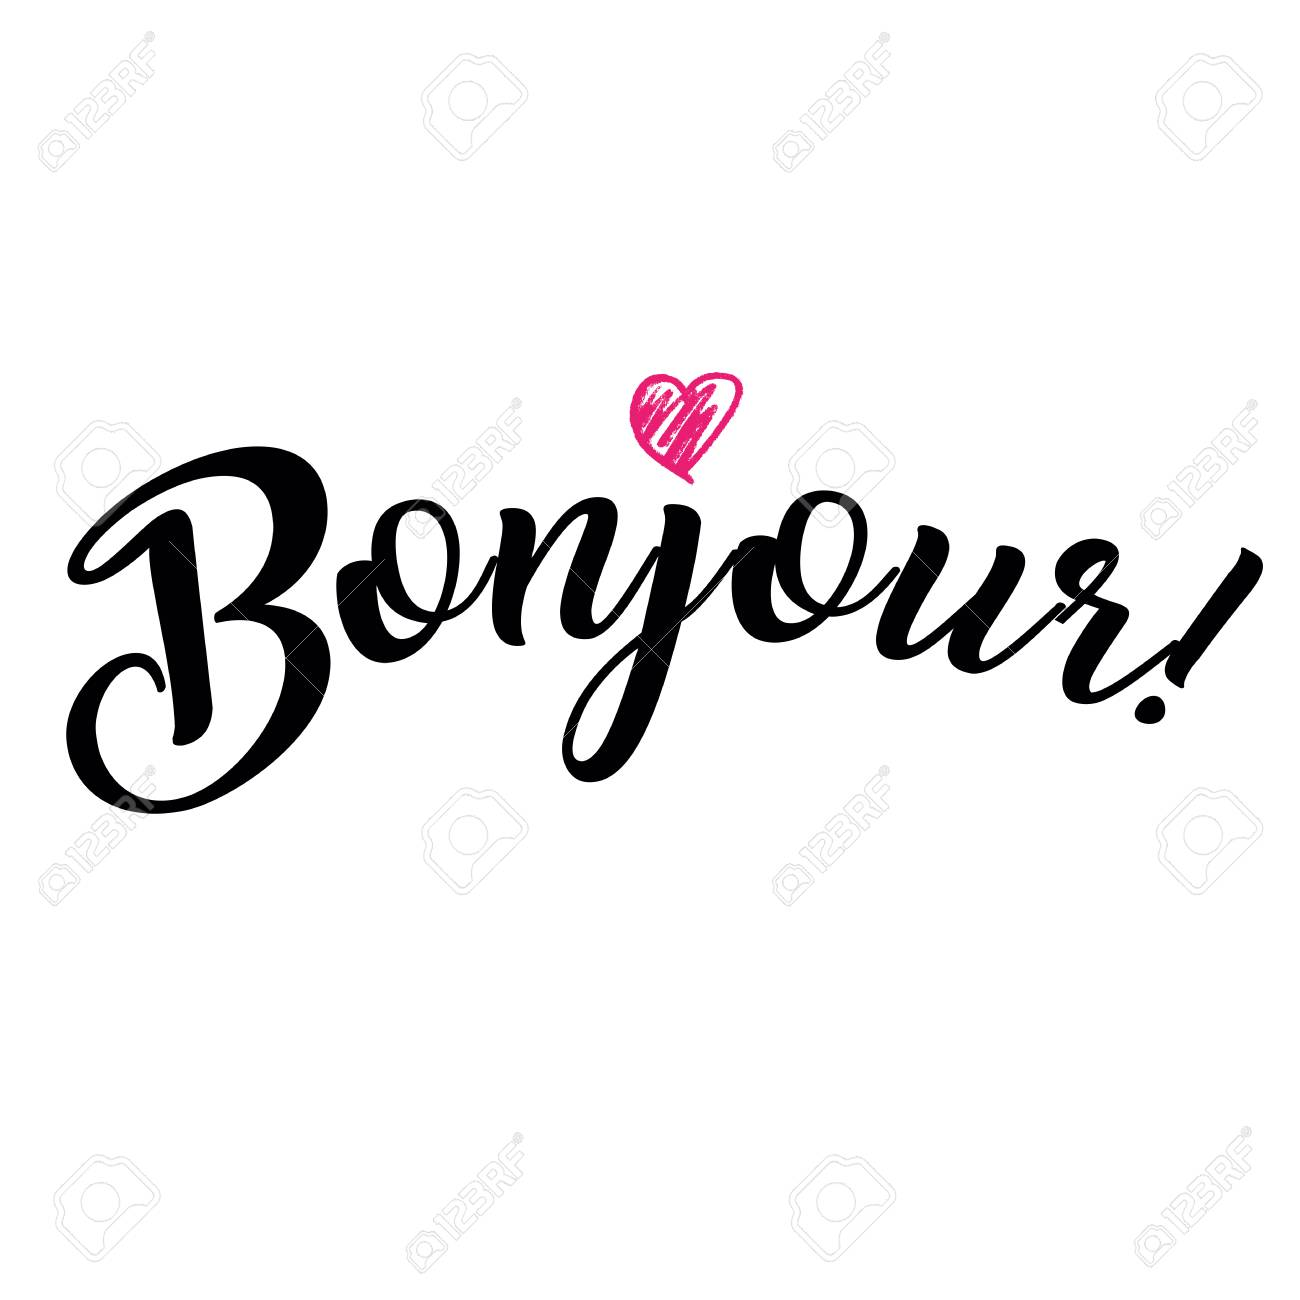 Word Hello In French Bonjour Fashionable Calligraphy Vector Royalty Free Cliparts Vectors And Stock Illustration Image 69807730